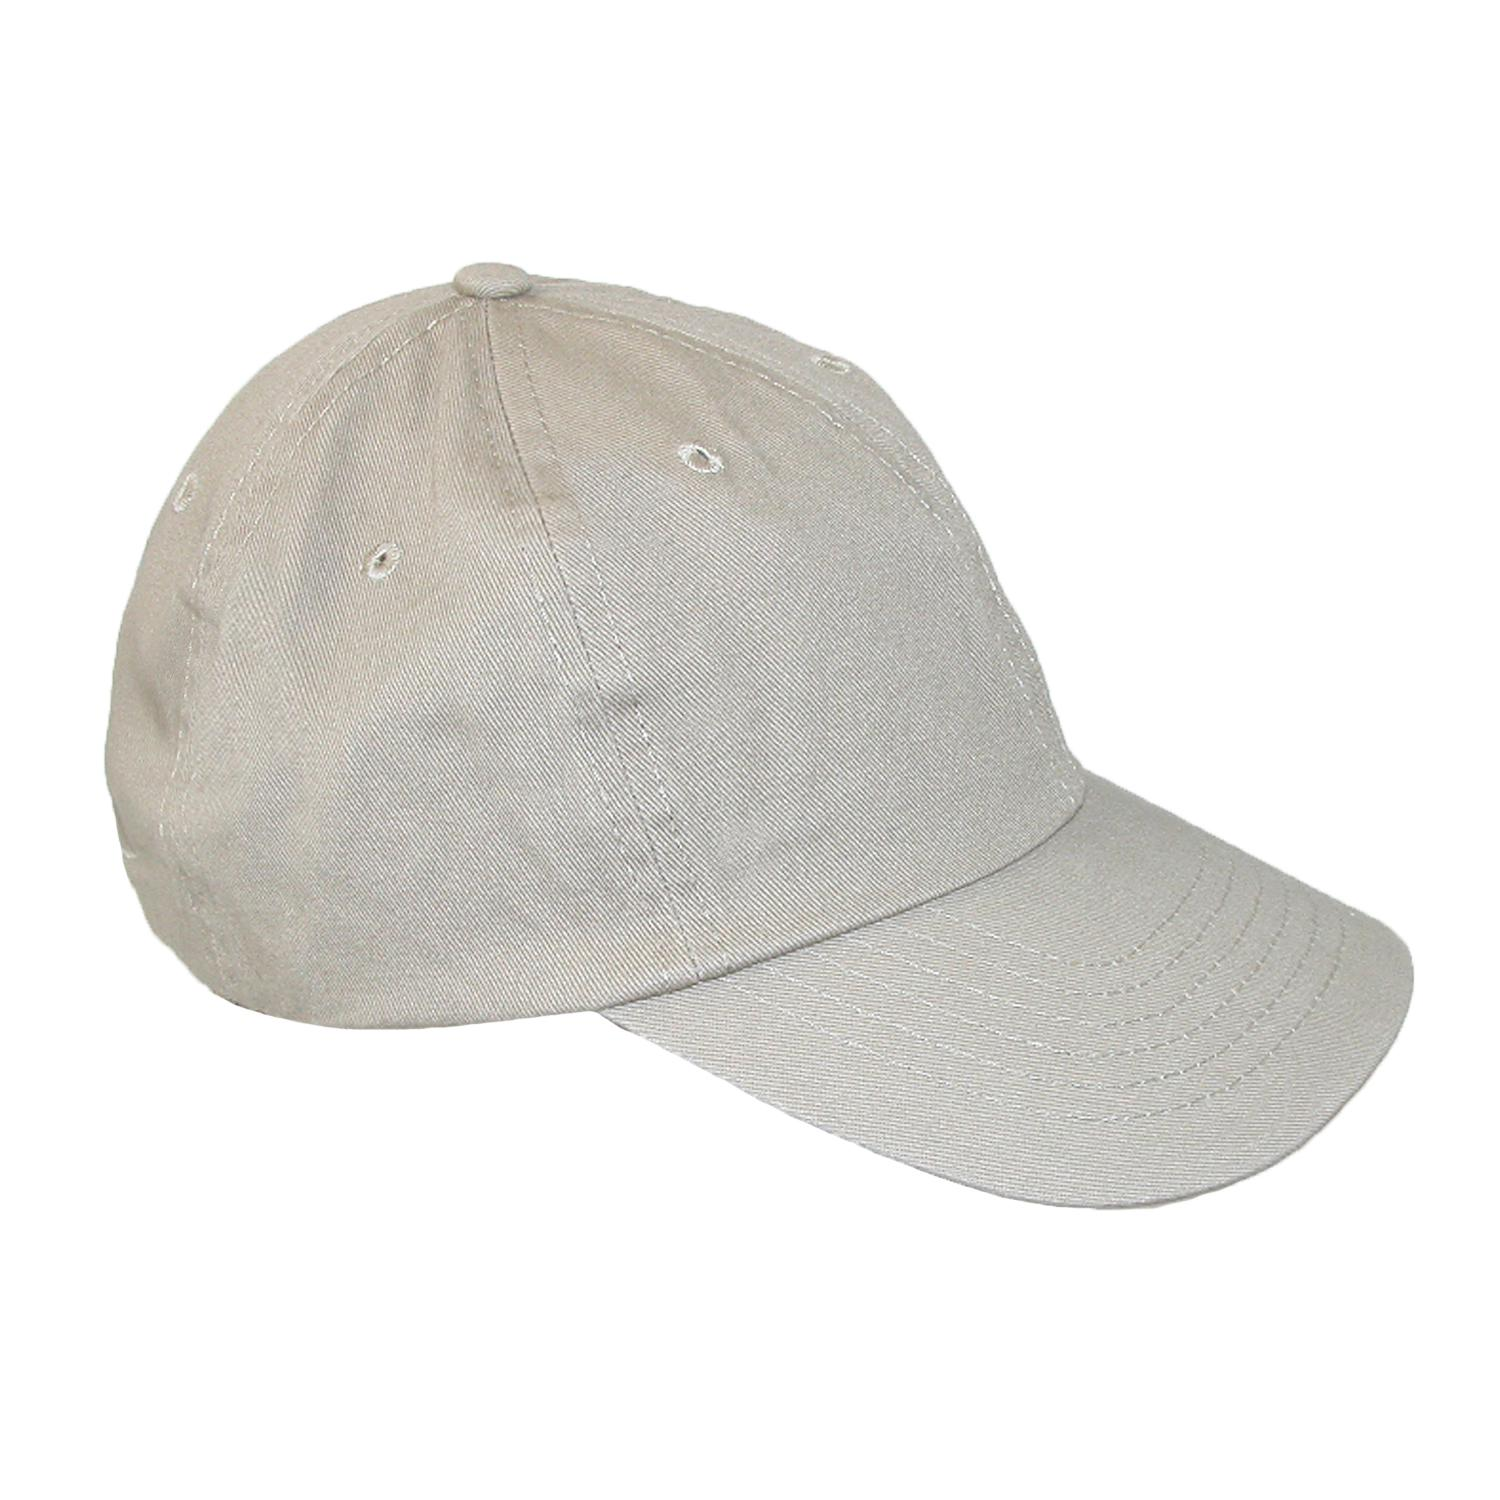 Dorfman_Pacific_Classic_Cotton_Basic_Solid_Sports_Baseball_Cap_-